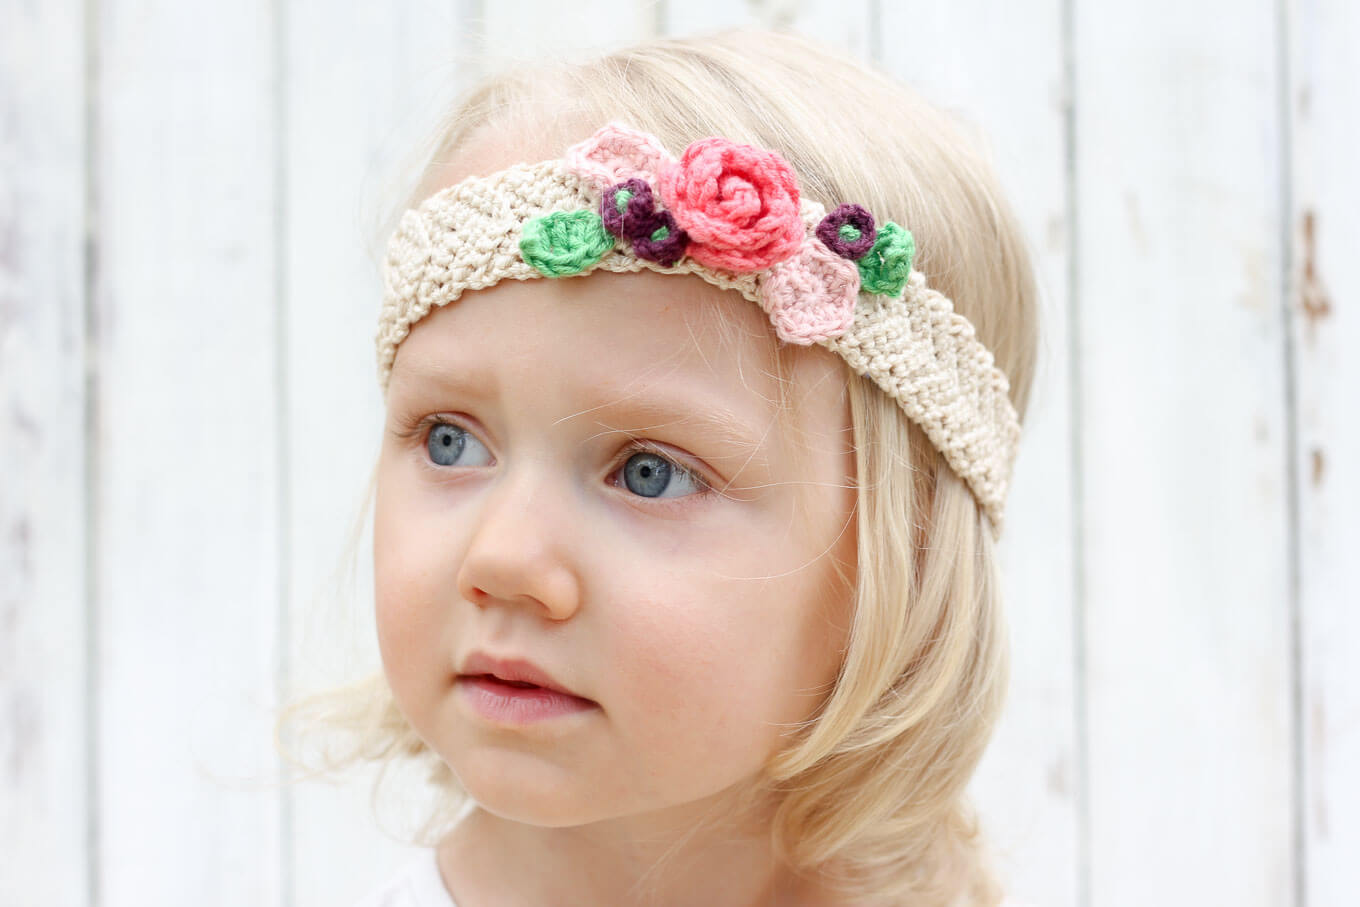 Crochet Pattern For A Flower Headband : Free Crochet Flower Headband Pattern (Baby, Toddler, Adult)